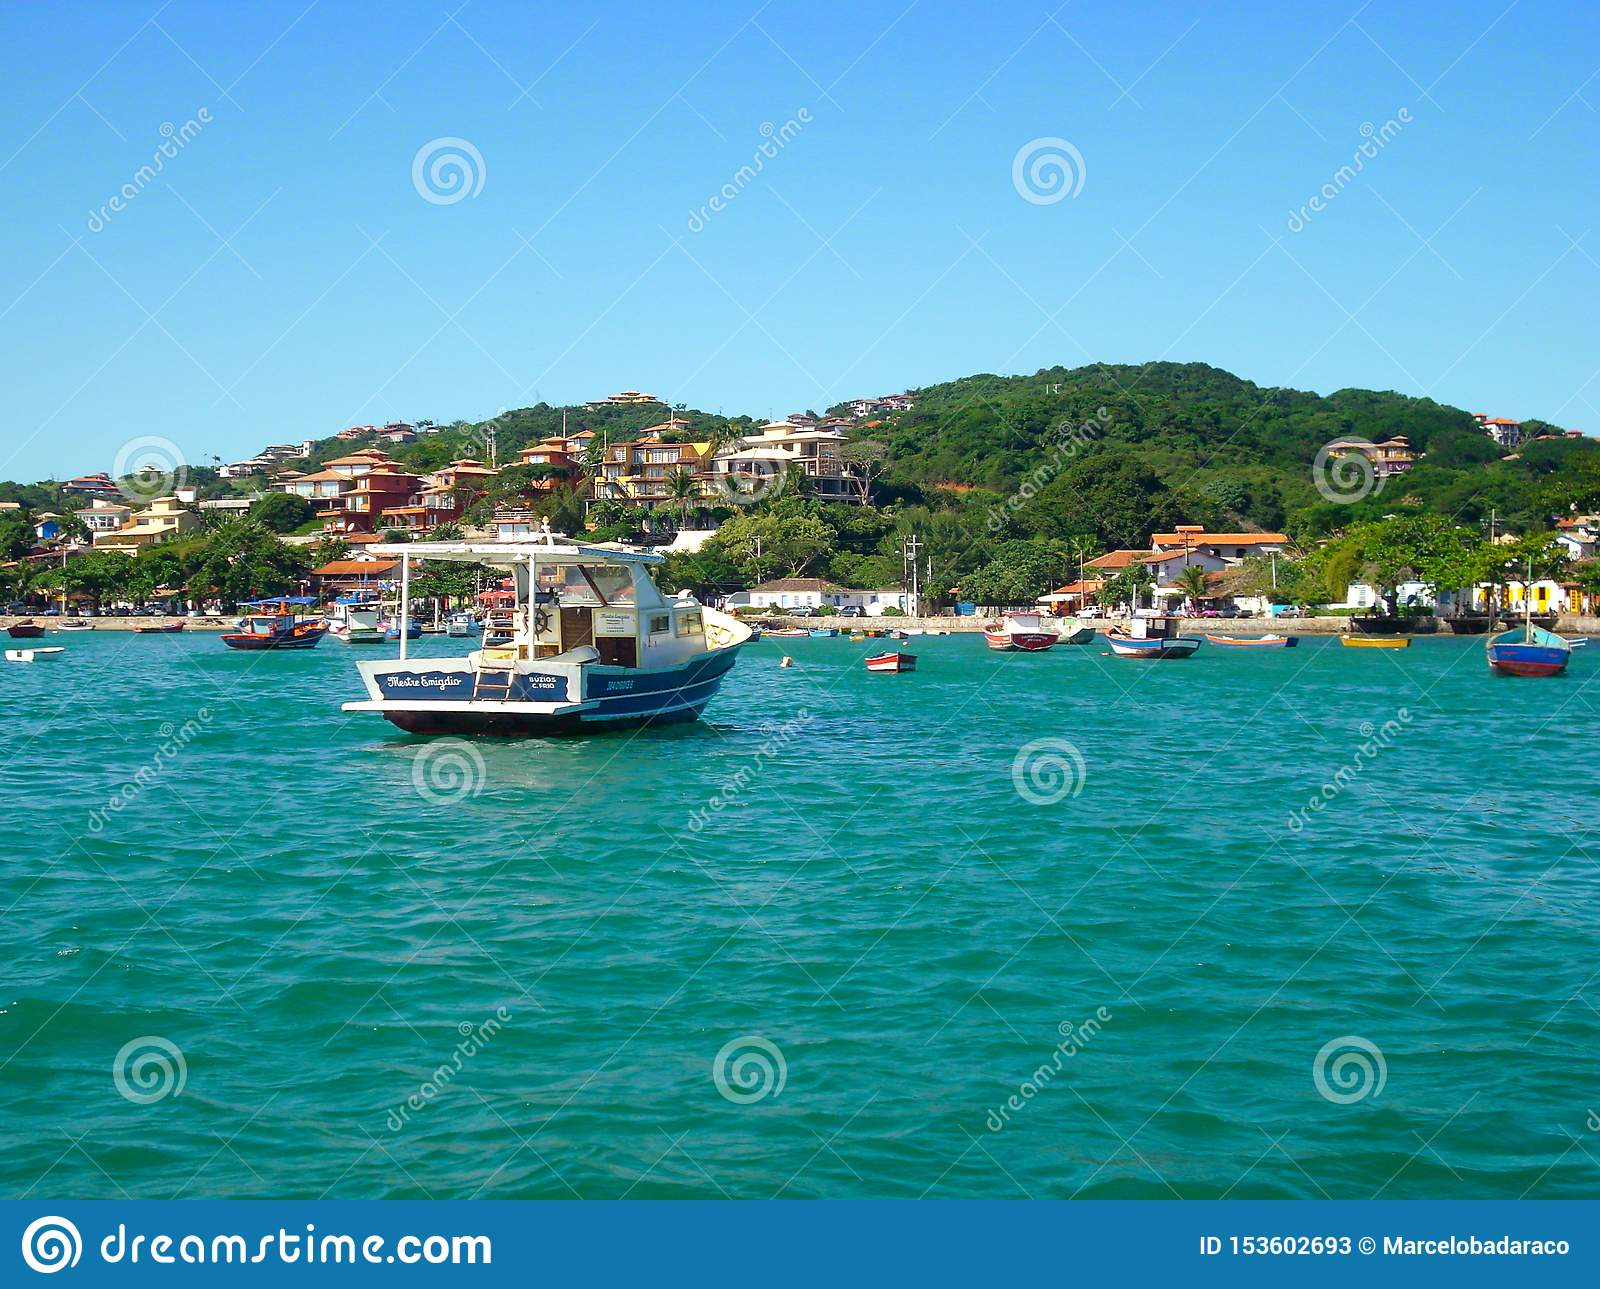 beautiful beaches in the south of america oceanic coast of Brazil